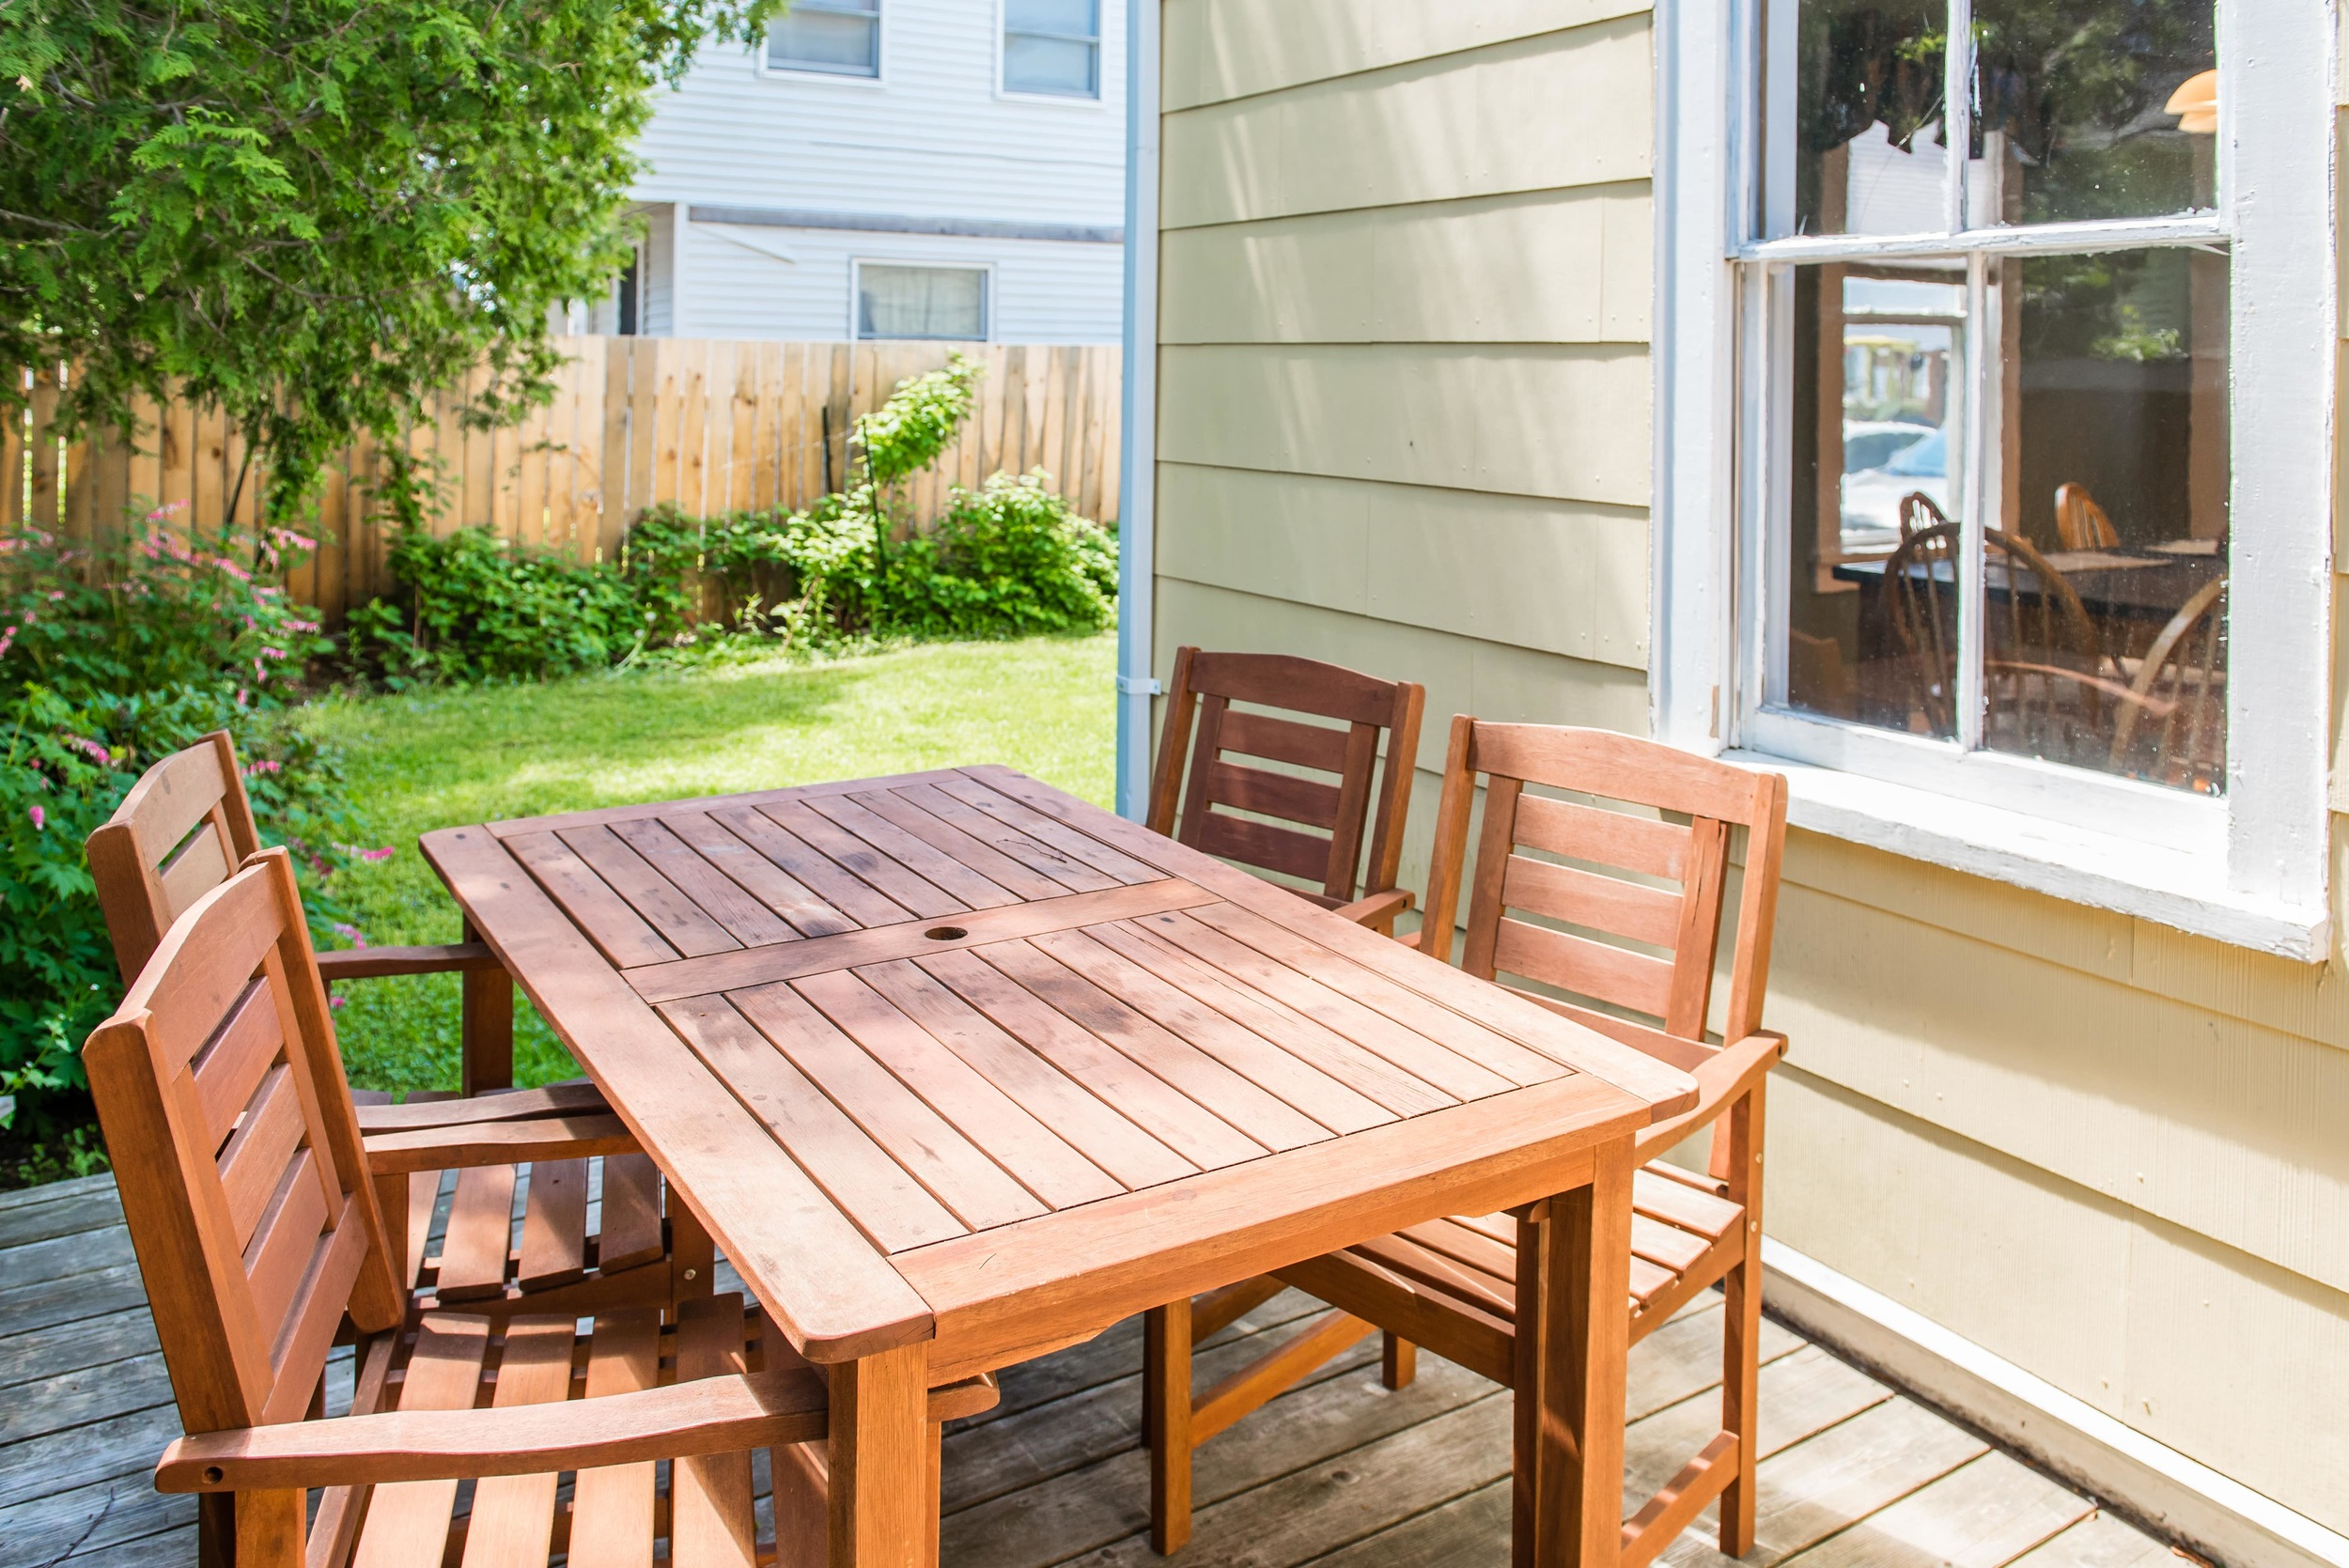 Back deck with dining area and grill.